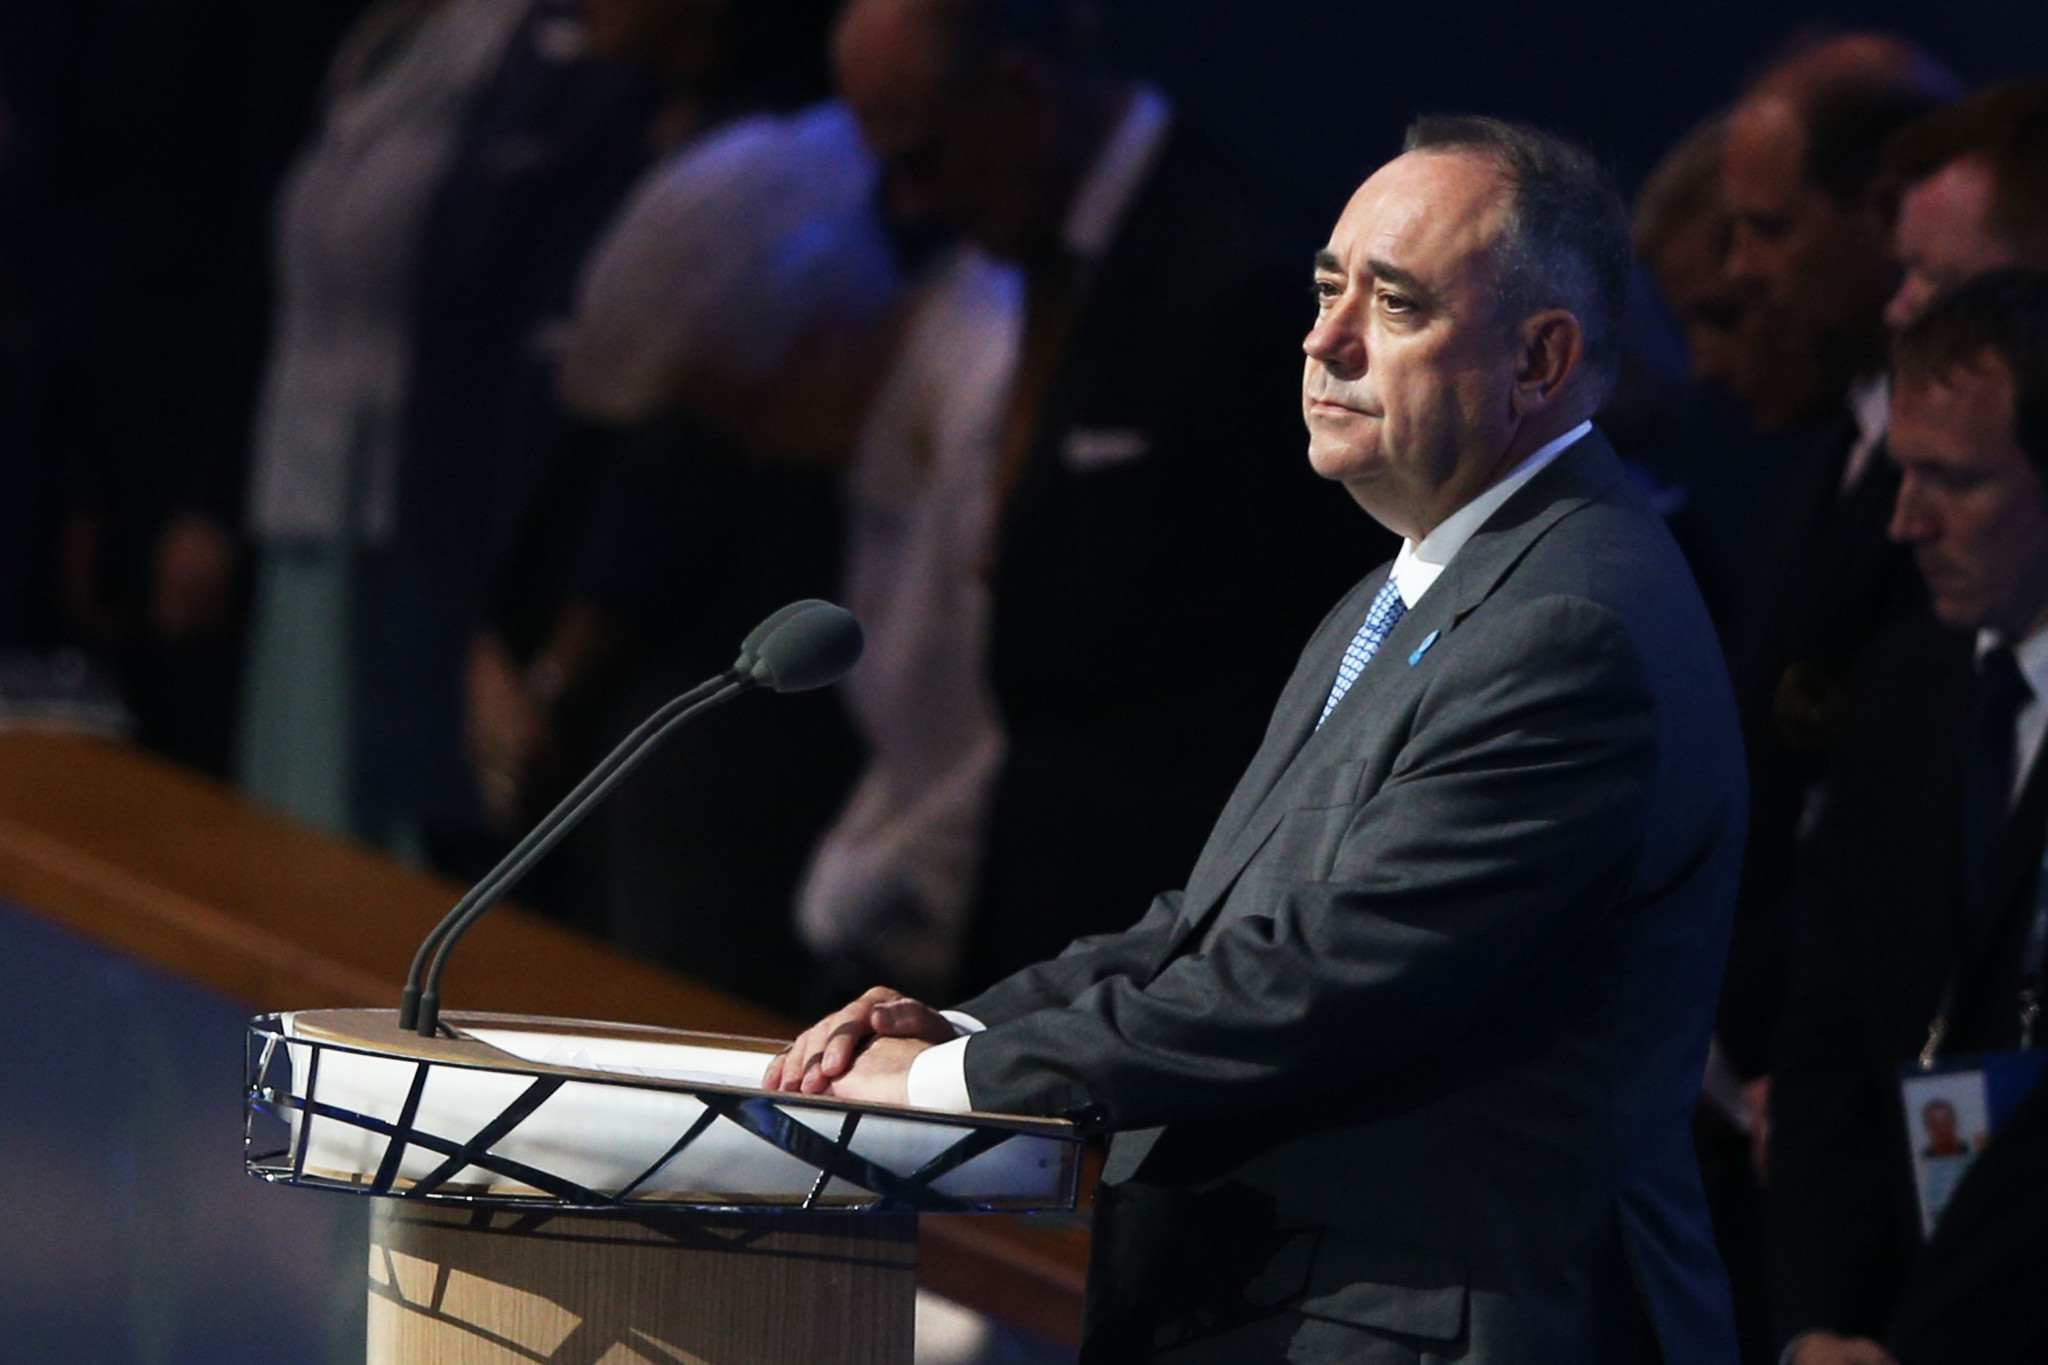 Alex Salmond First Minister of Scotland speaks during the Opening Ceremony for the Glasgow 2014 Commonwealth Games ©Getty Images